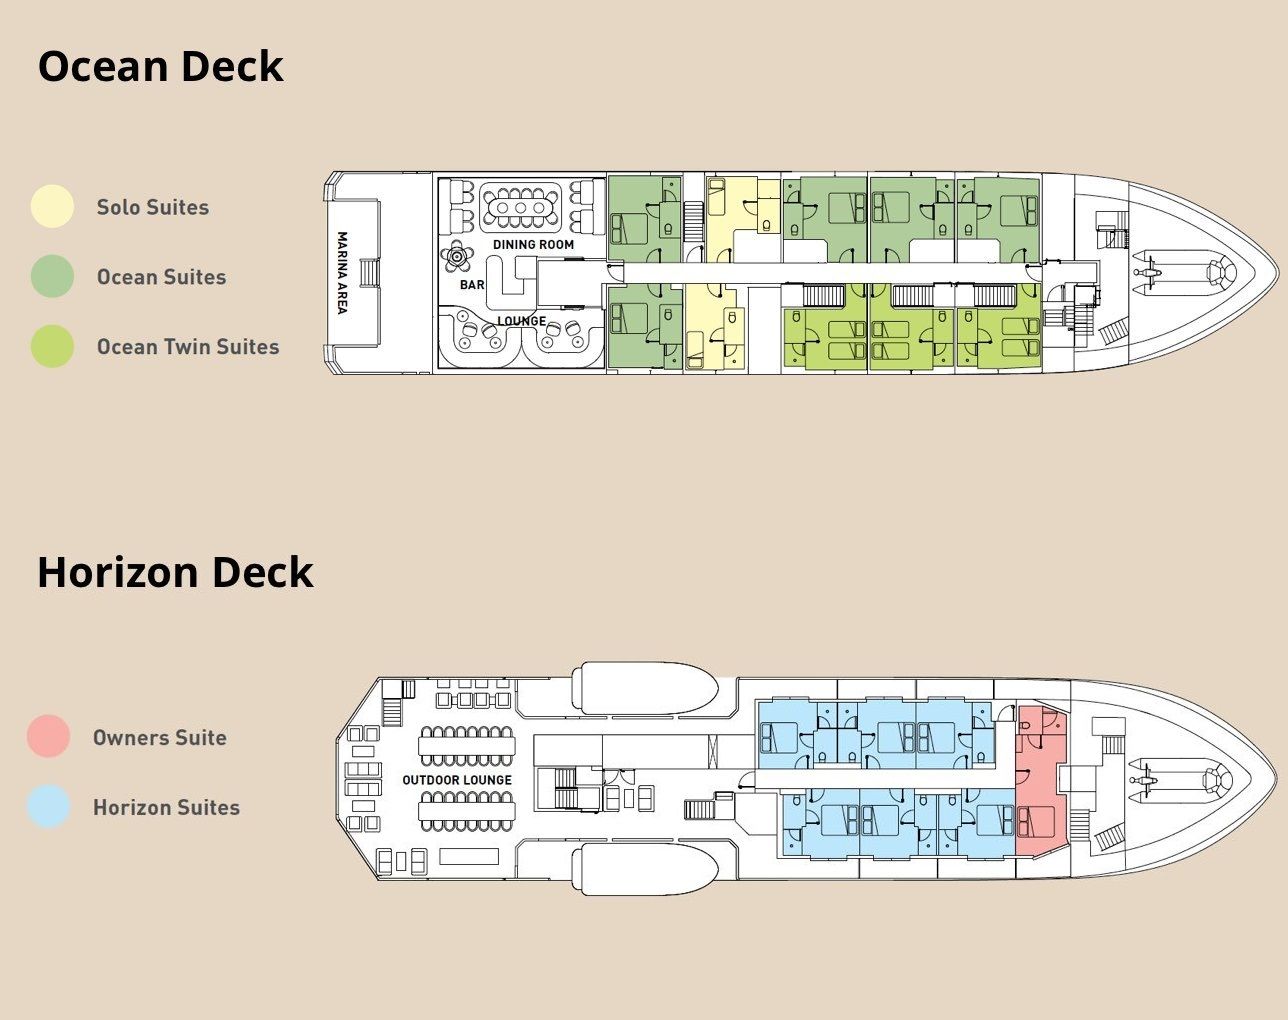 Cabin layout for Island Escape